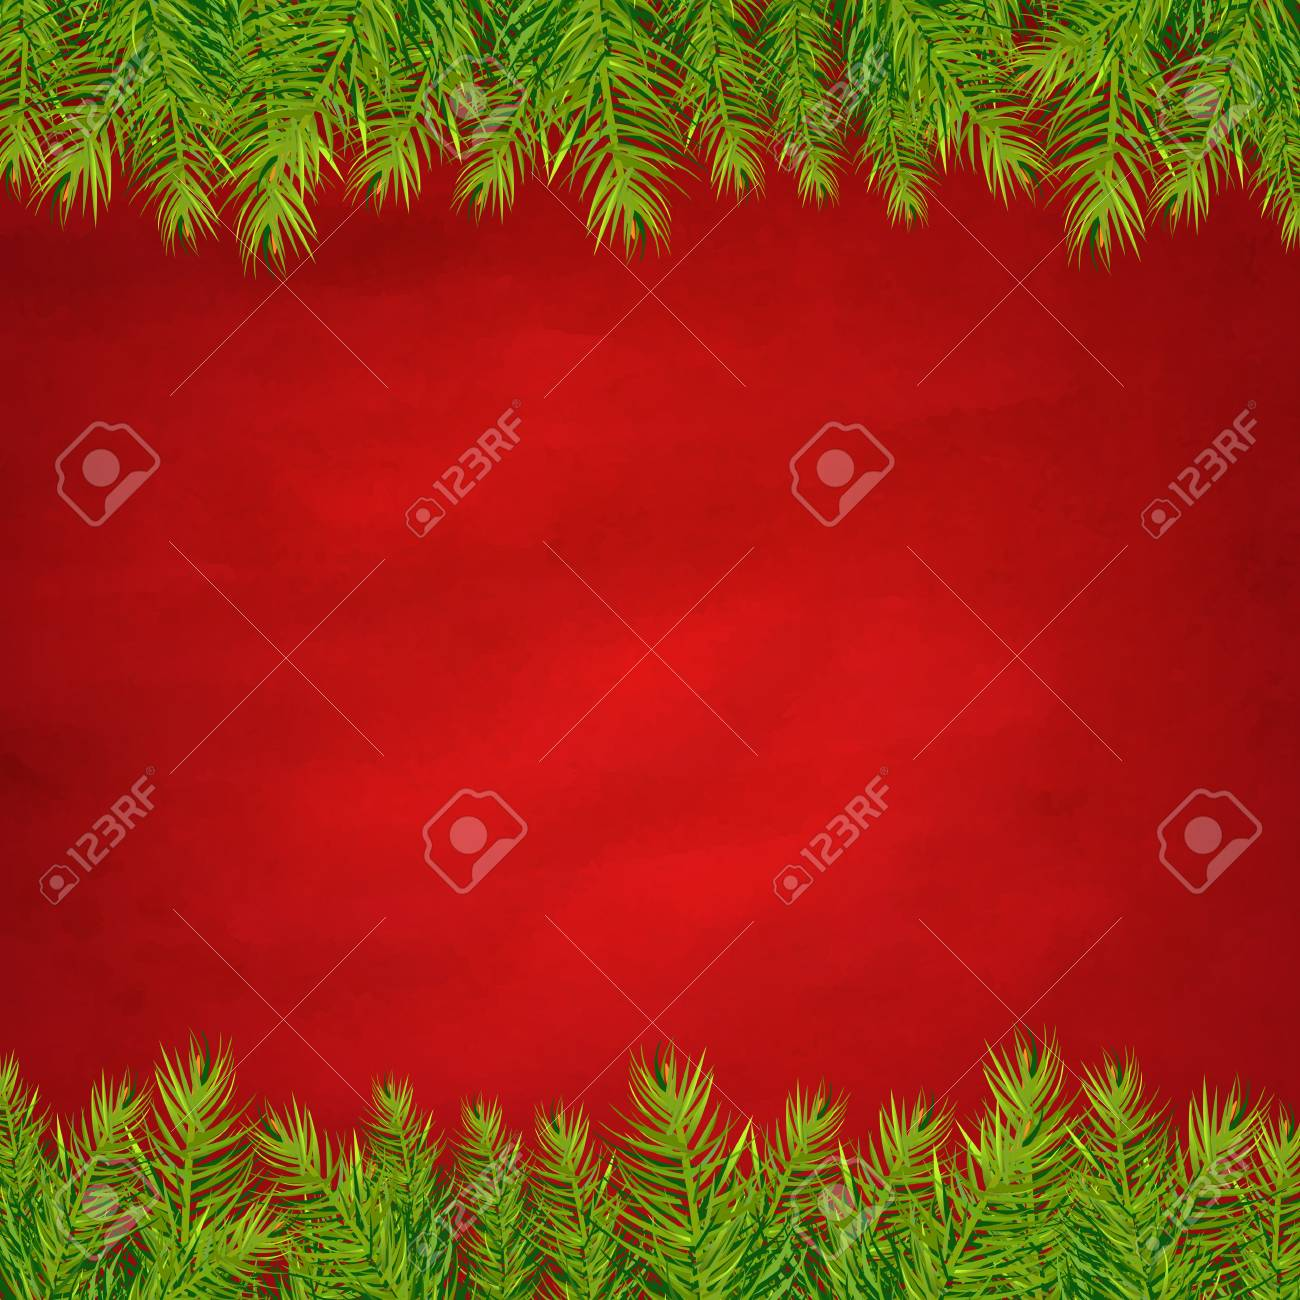 Retro Red Background And Fir Tree Borders With Gradient Mesh, Illustration Stock Vector - 16667186